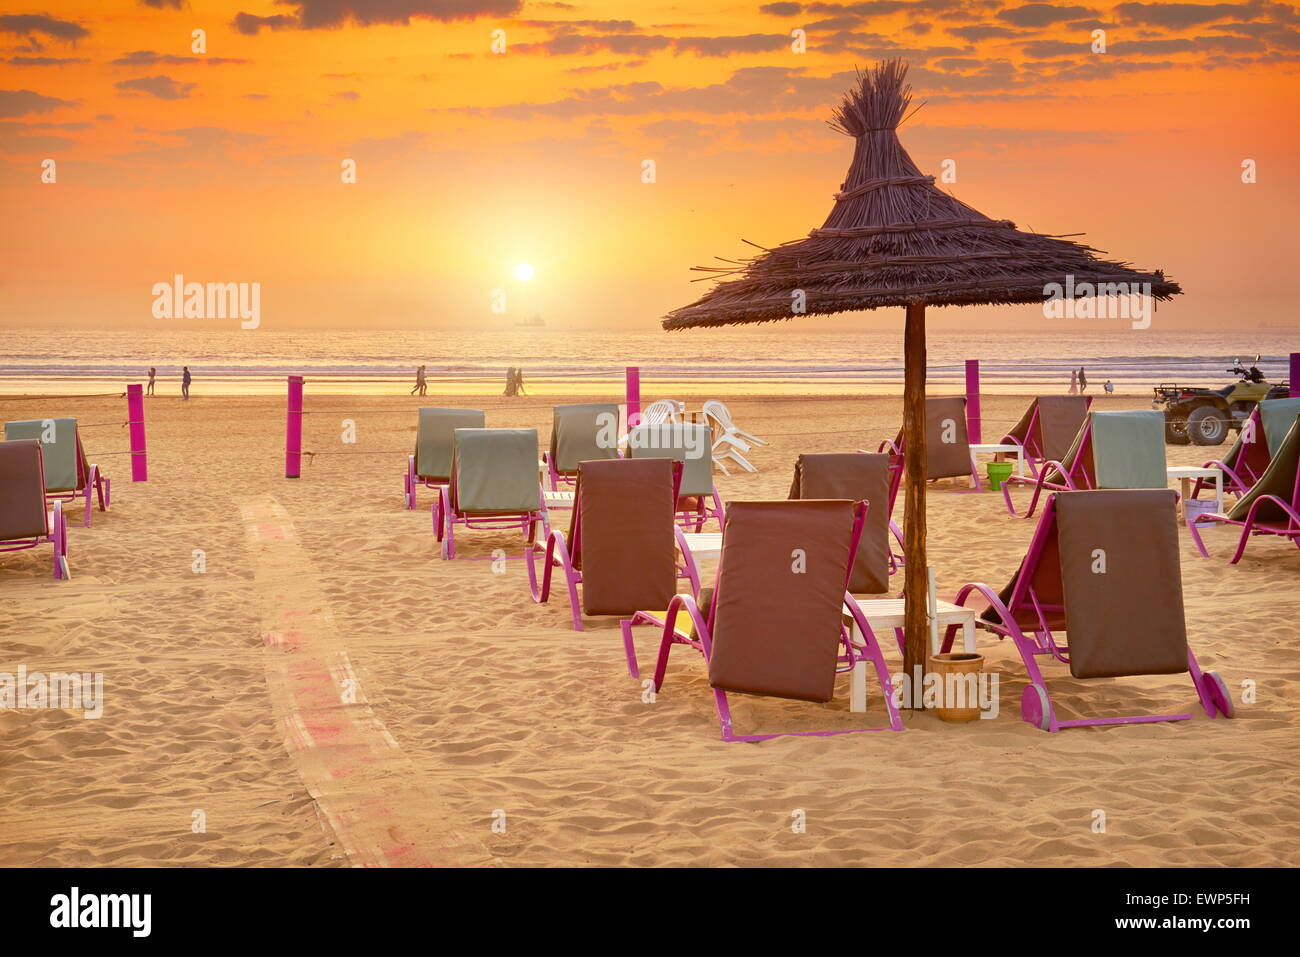 Agadir - sunset at the beach, Morocco - Stock Image